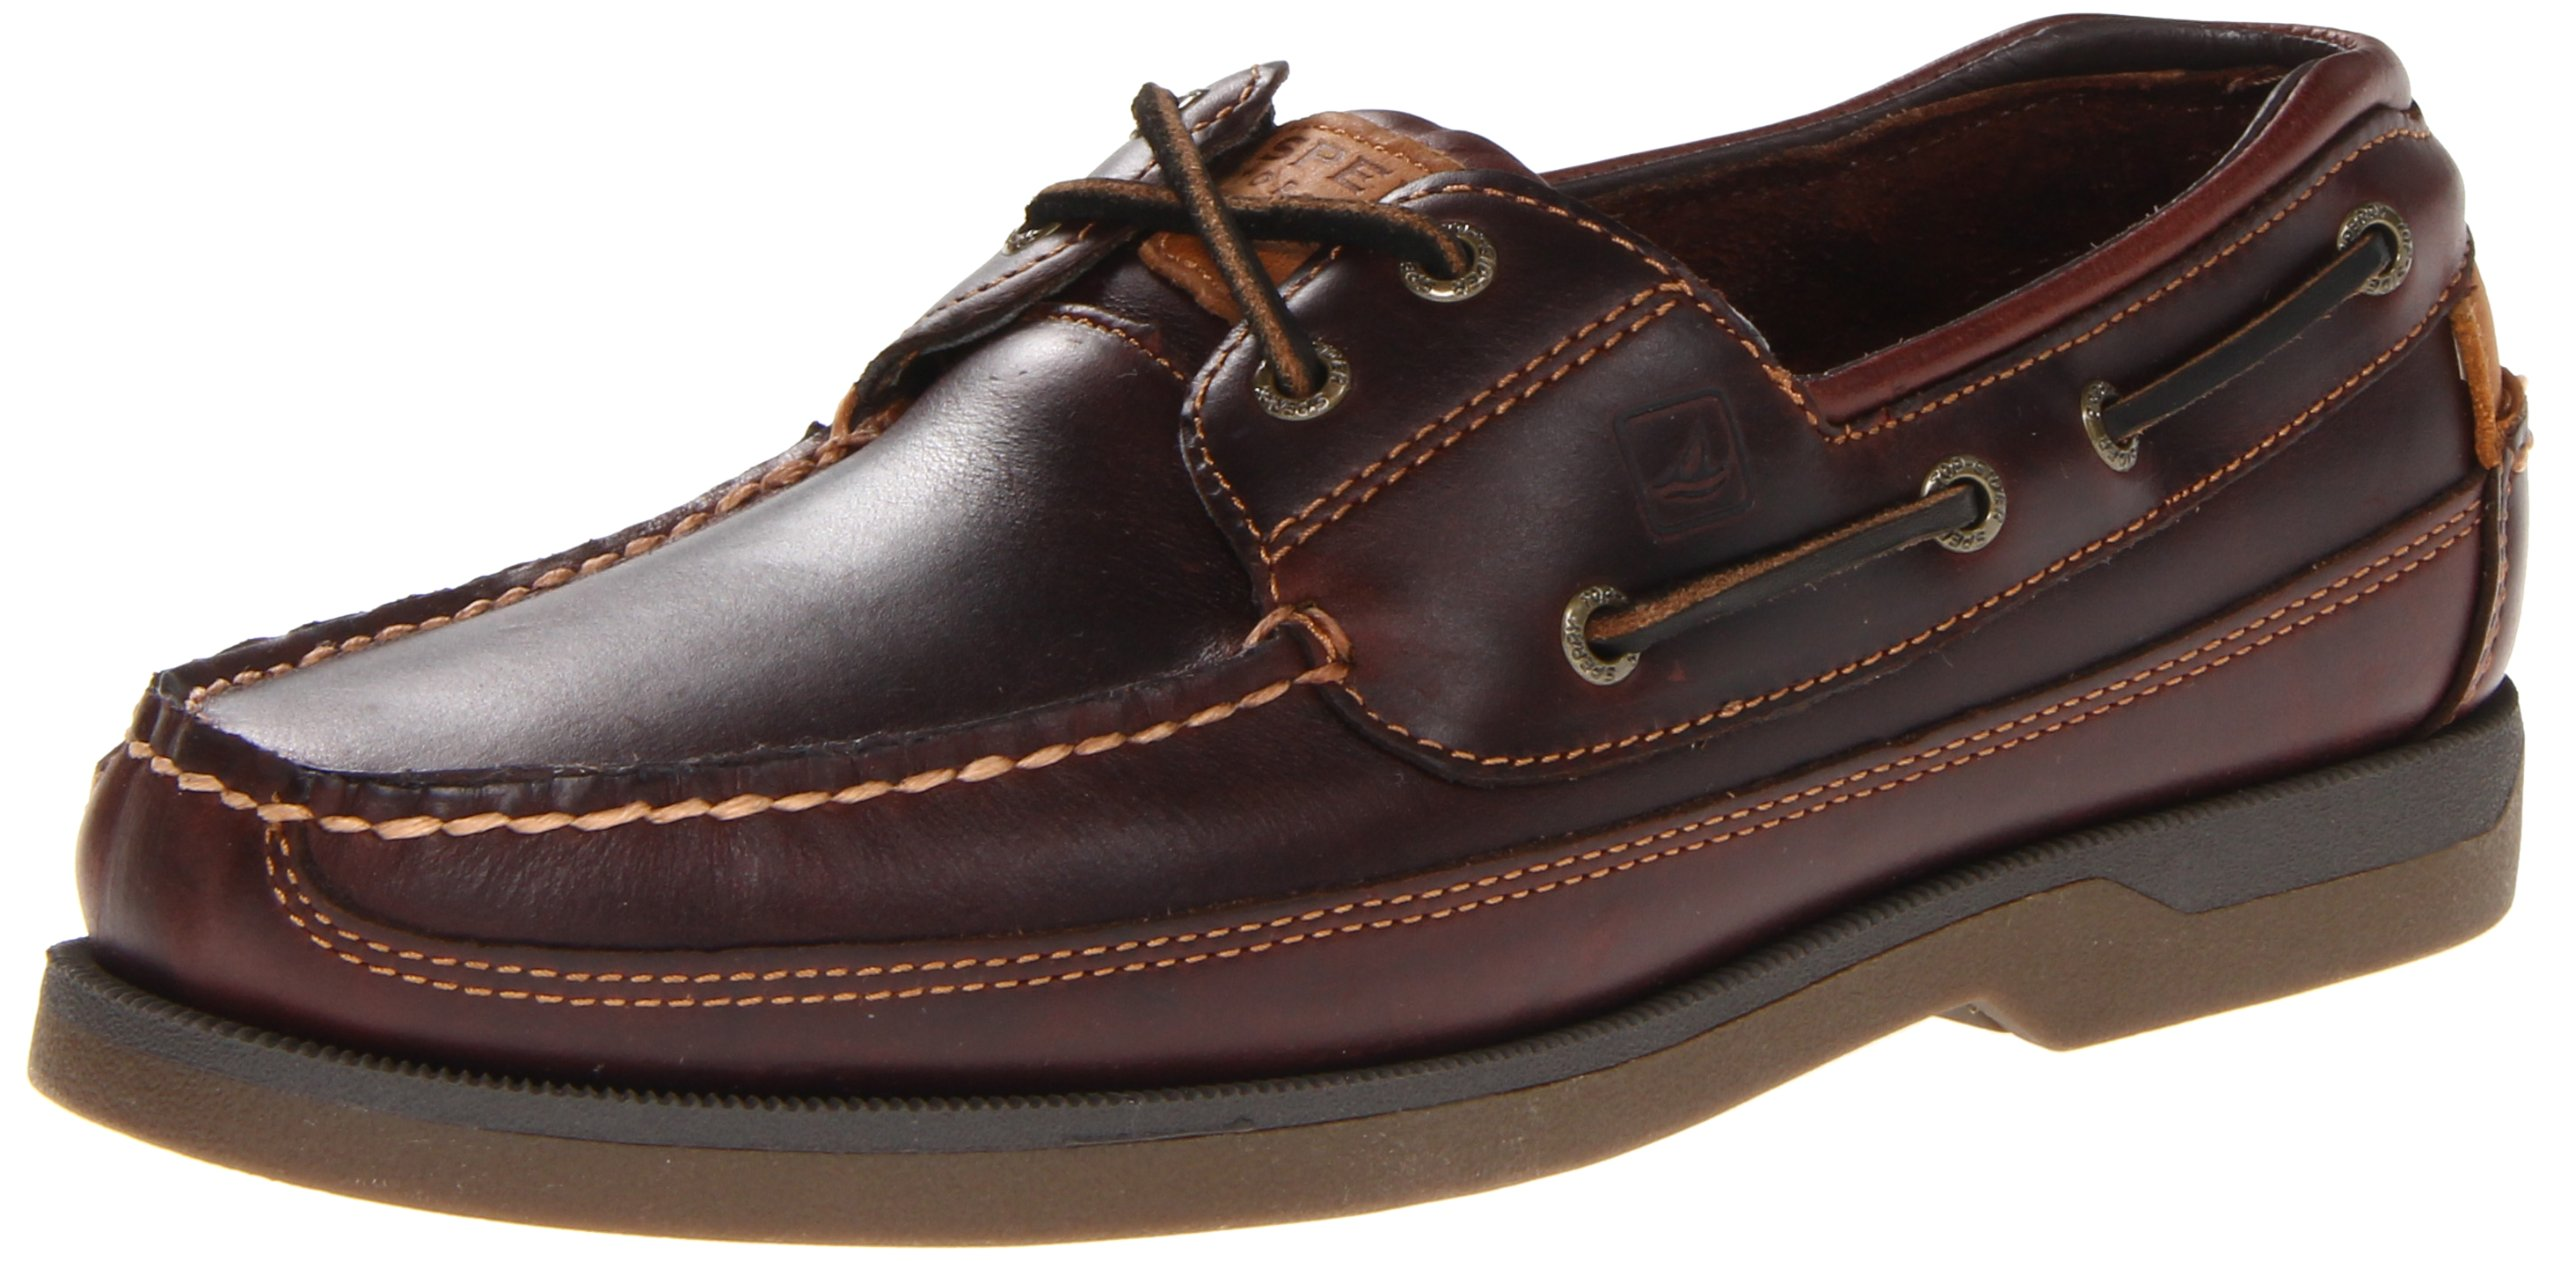 Sperry Top-Sider Men's Mako 2-Eye Canoe Moc Lace-Up, Amaretto 11 W US by Sperry Top-Sider